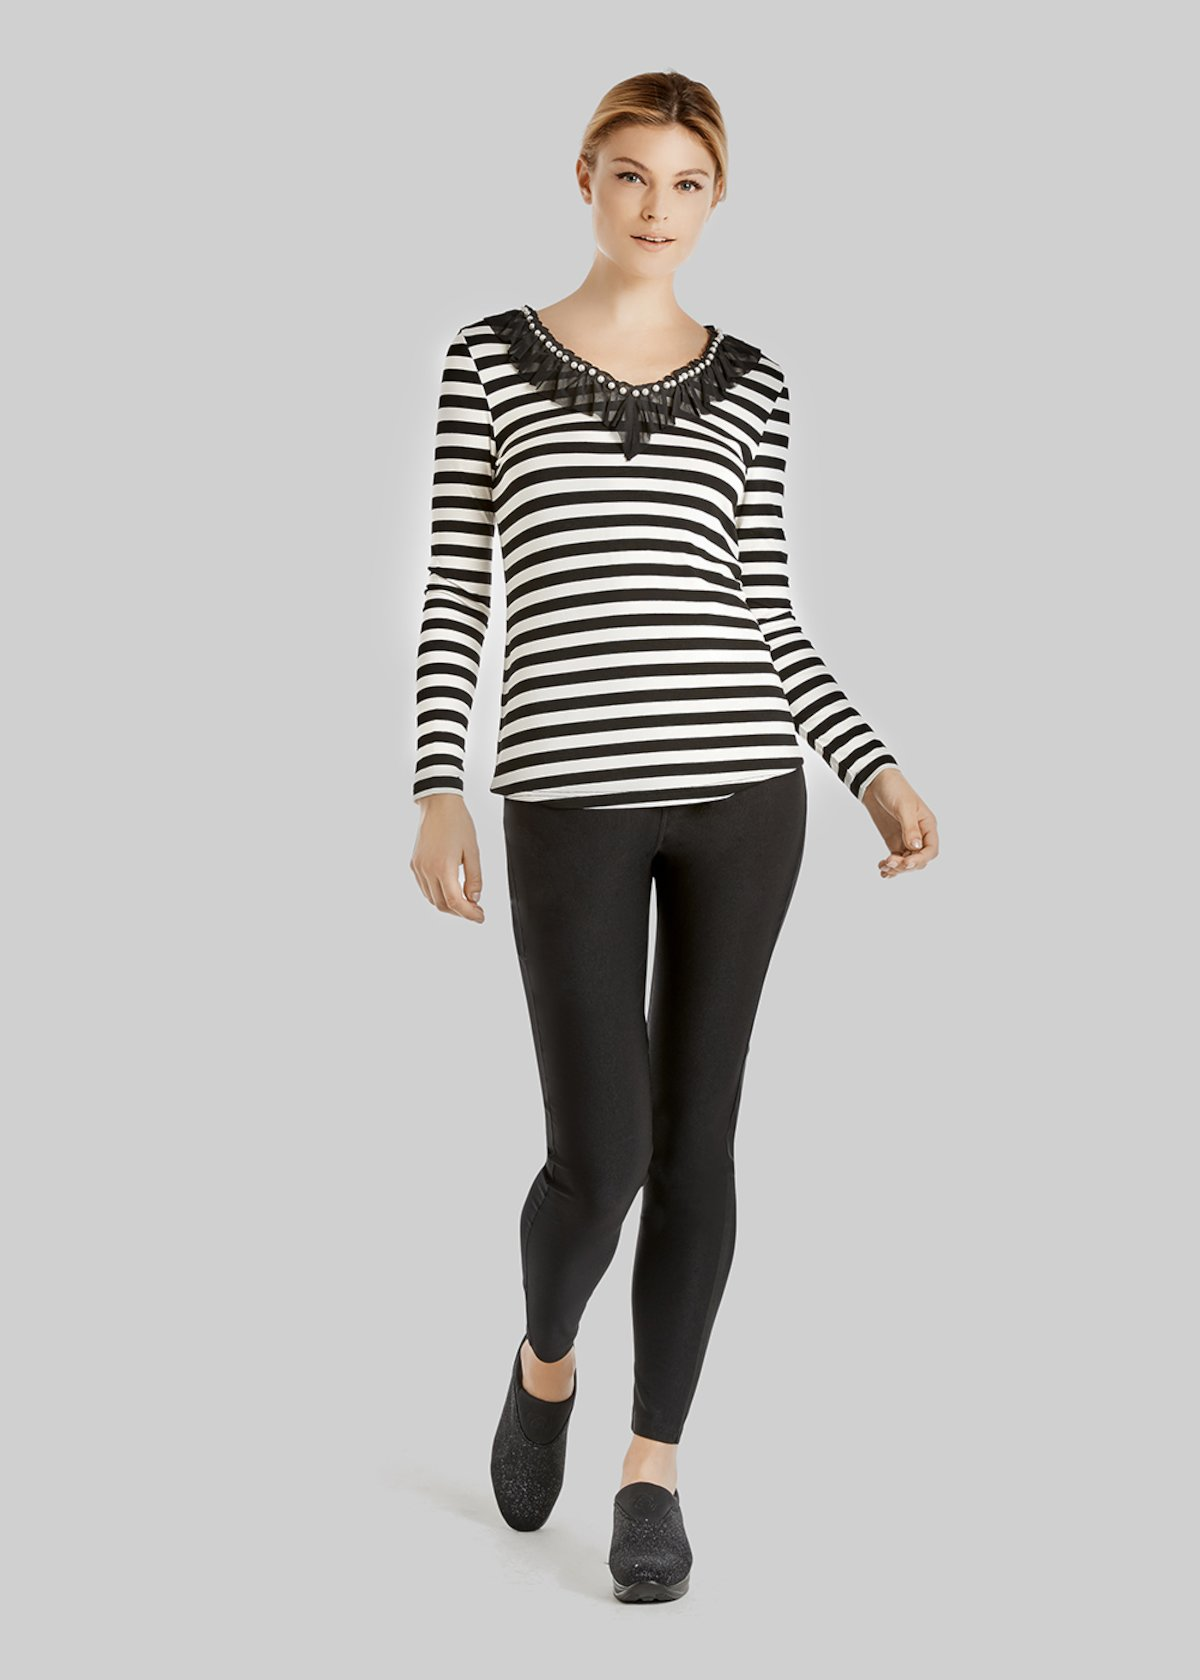 Stily fantasy stripes t-shirt with mesh and beads on the neckline